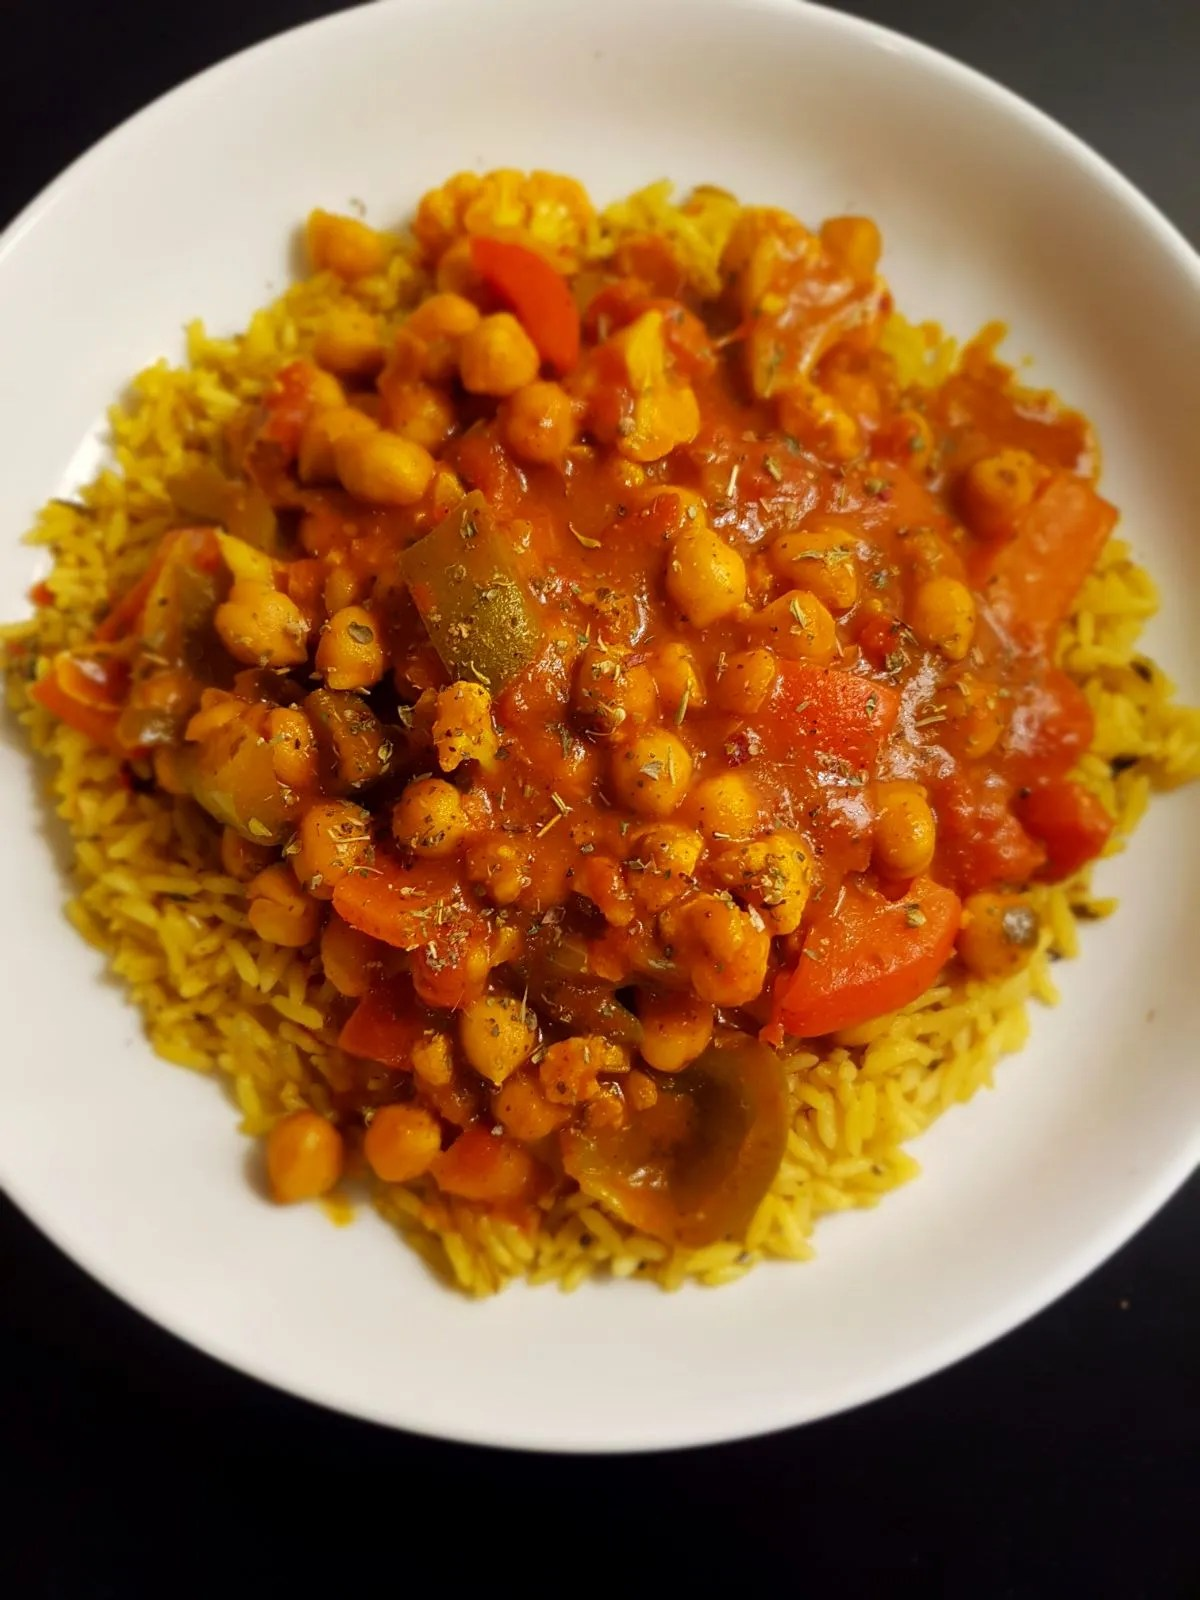 eat vegan curry lucy watson feed me vegan